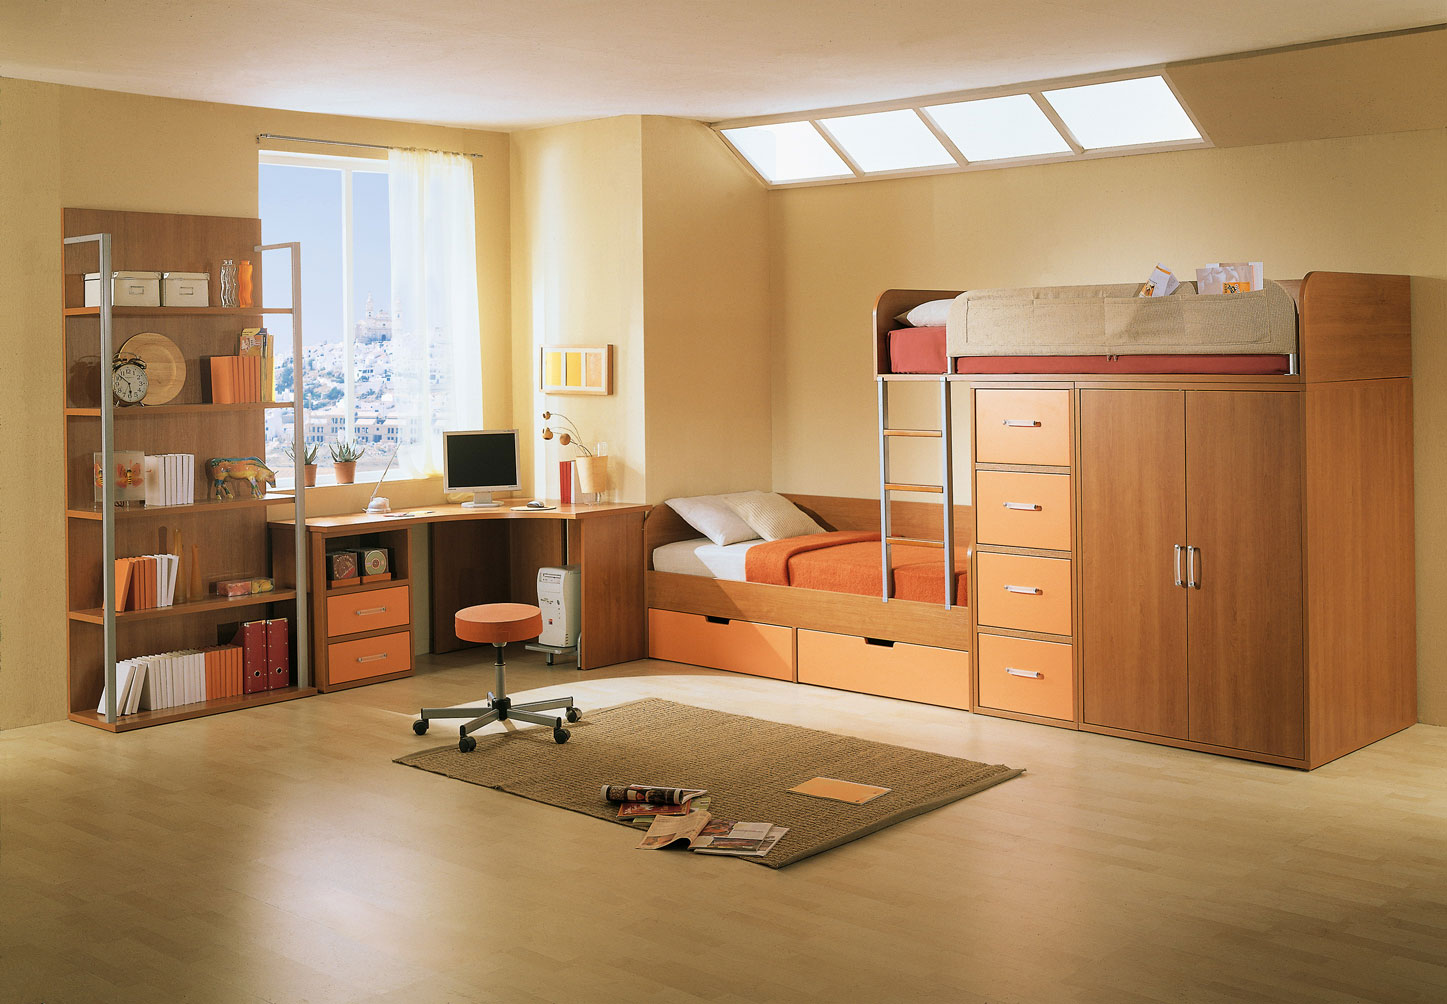 Bedroom Skylight Kid 39s Rooms From Russian Maker Akossta